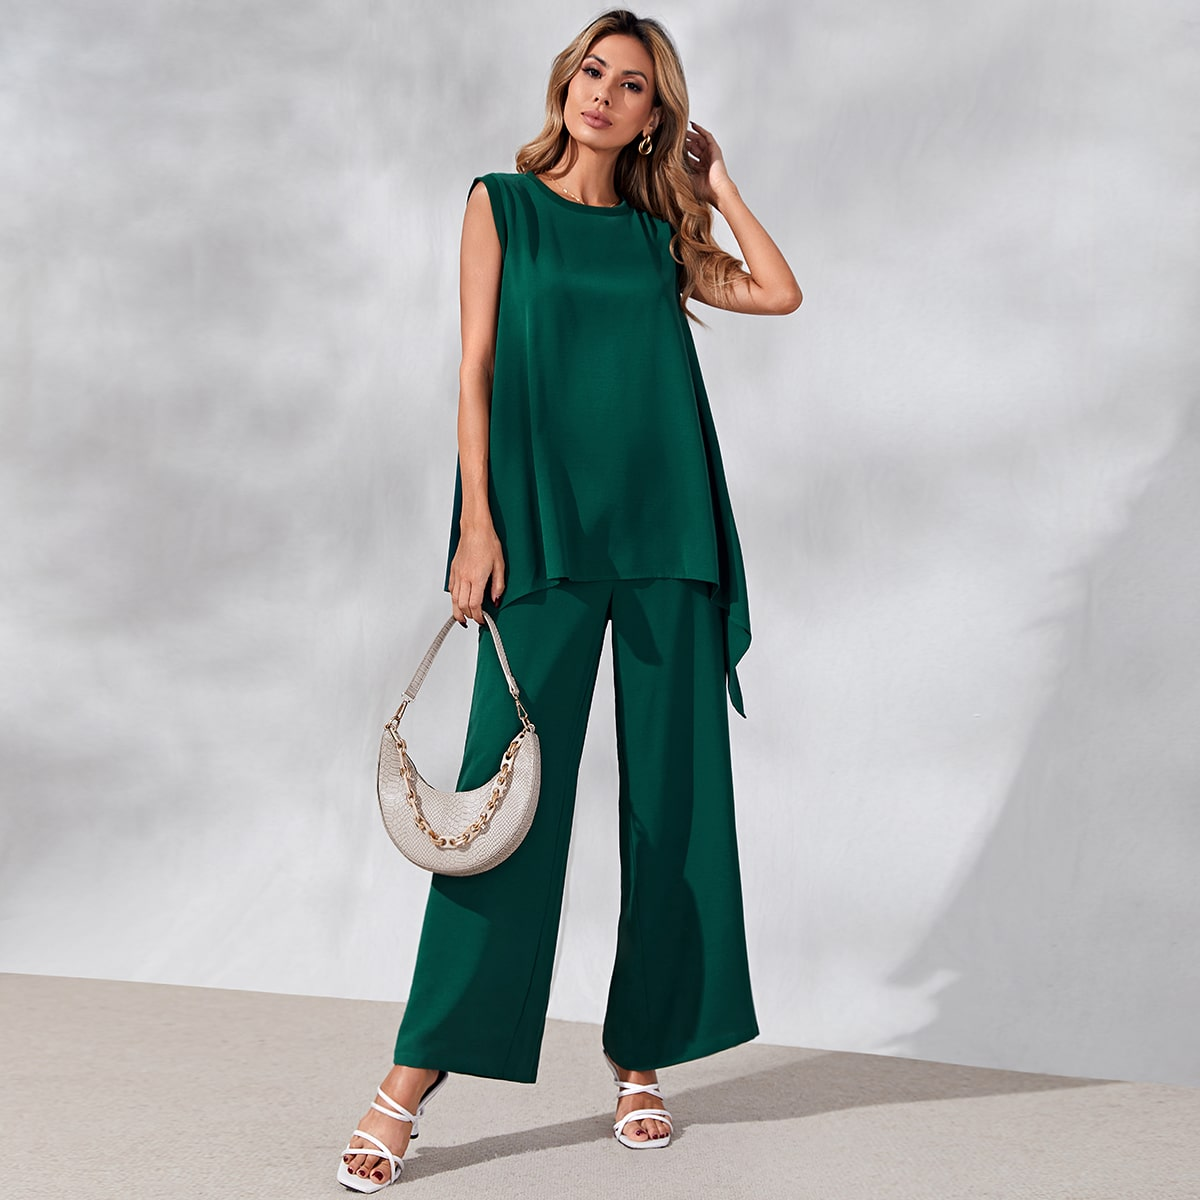 Solid Asymmetrical Hem Sleeveless Top And Wide Leg Pants, SHEIN  - buy with discount